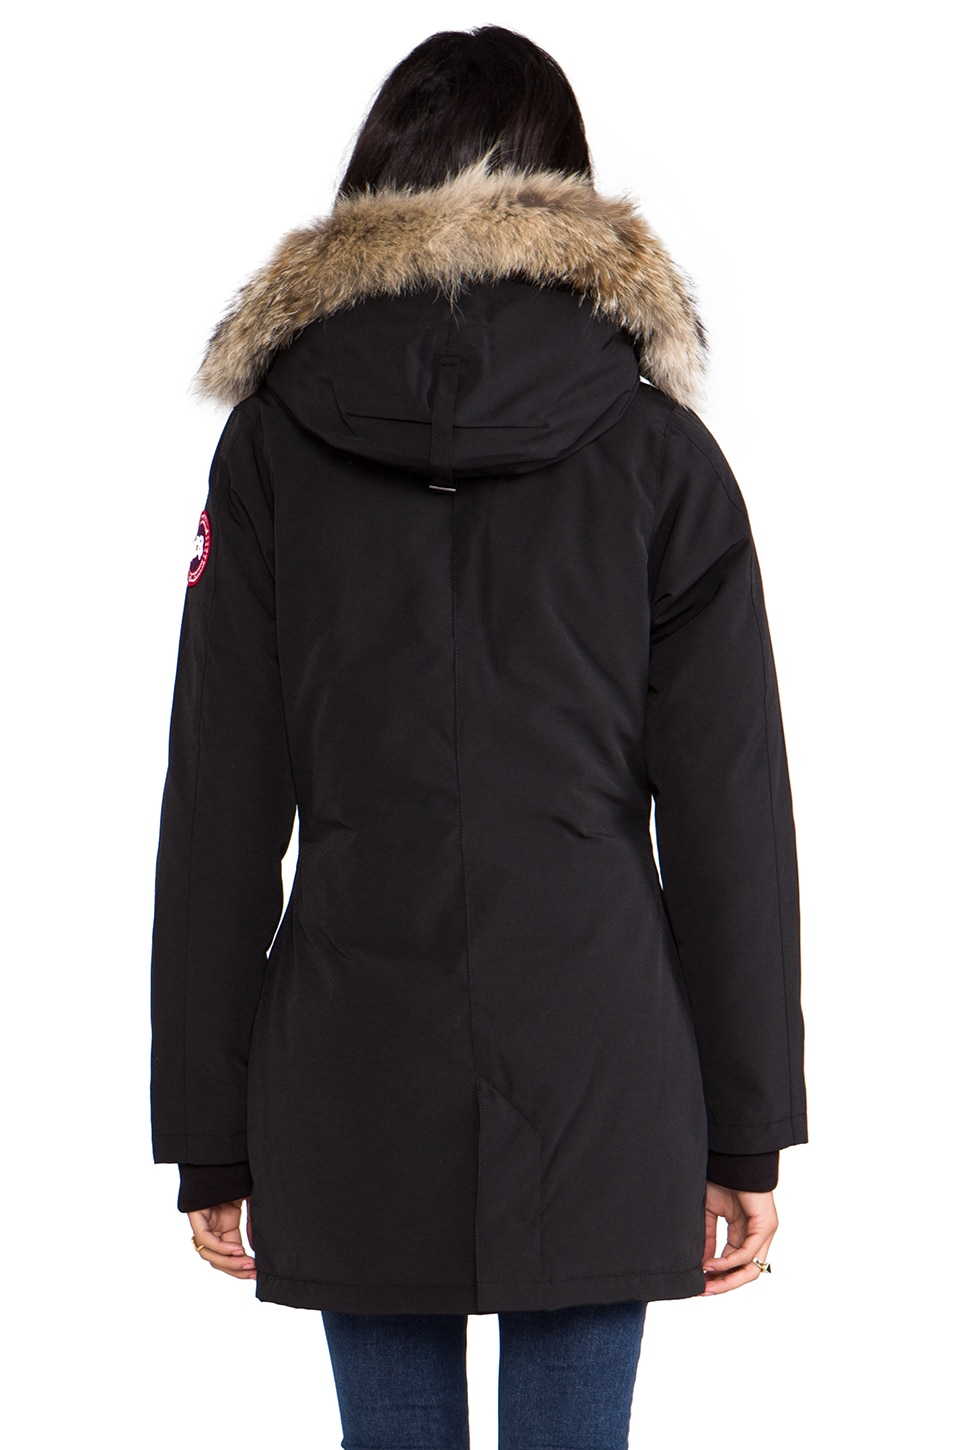 Canada Goose sale - Canada Goose Victoria Parka with Coyote Fur in Black | REVOLVE